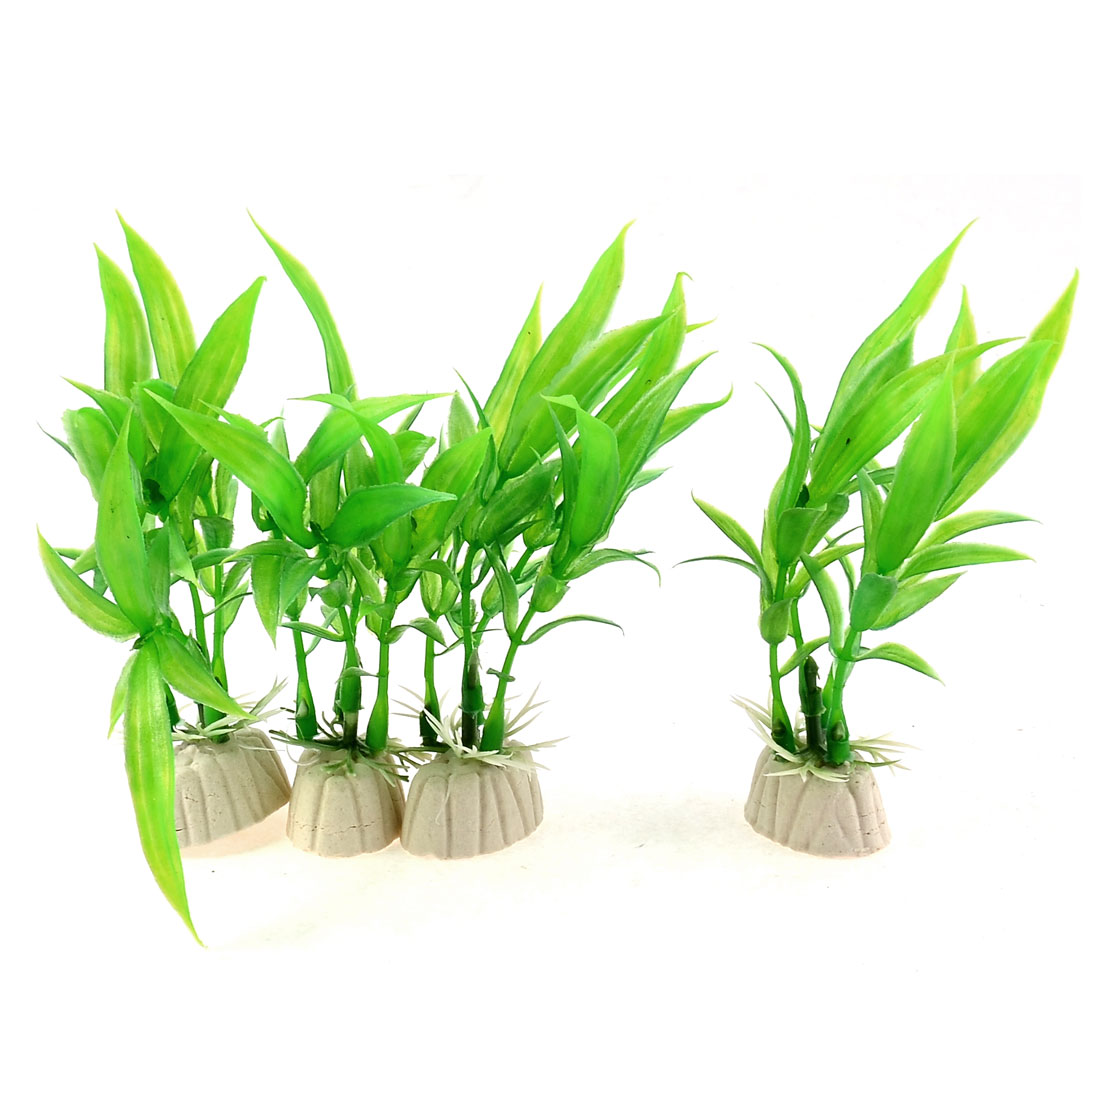 Aquarium Ornament Plastic Plants Ceramic Base Green 4pcs for Fish Tank